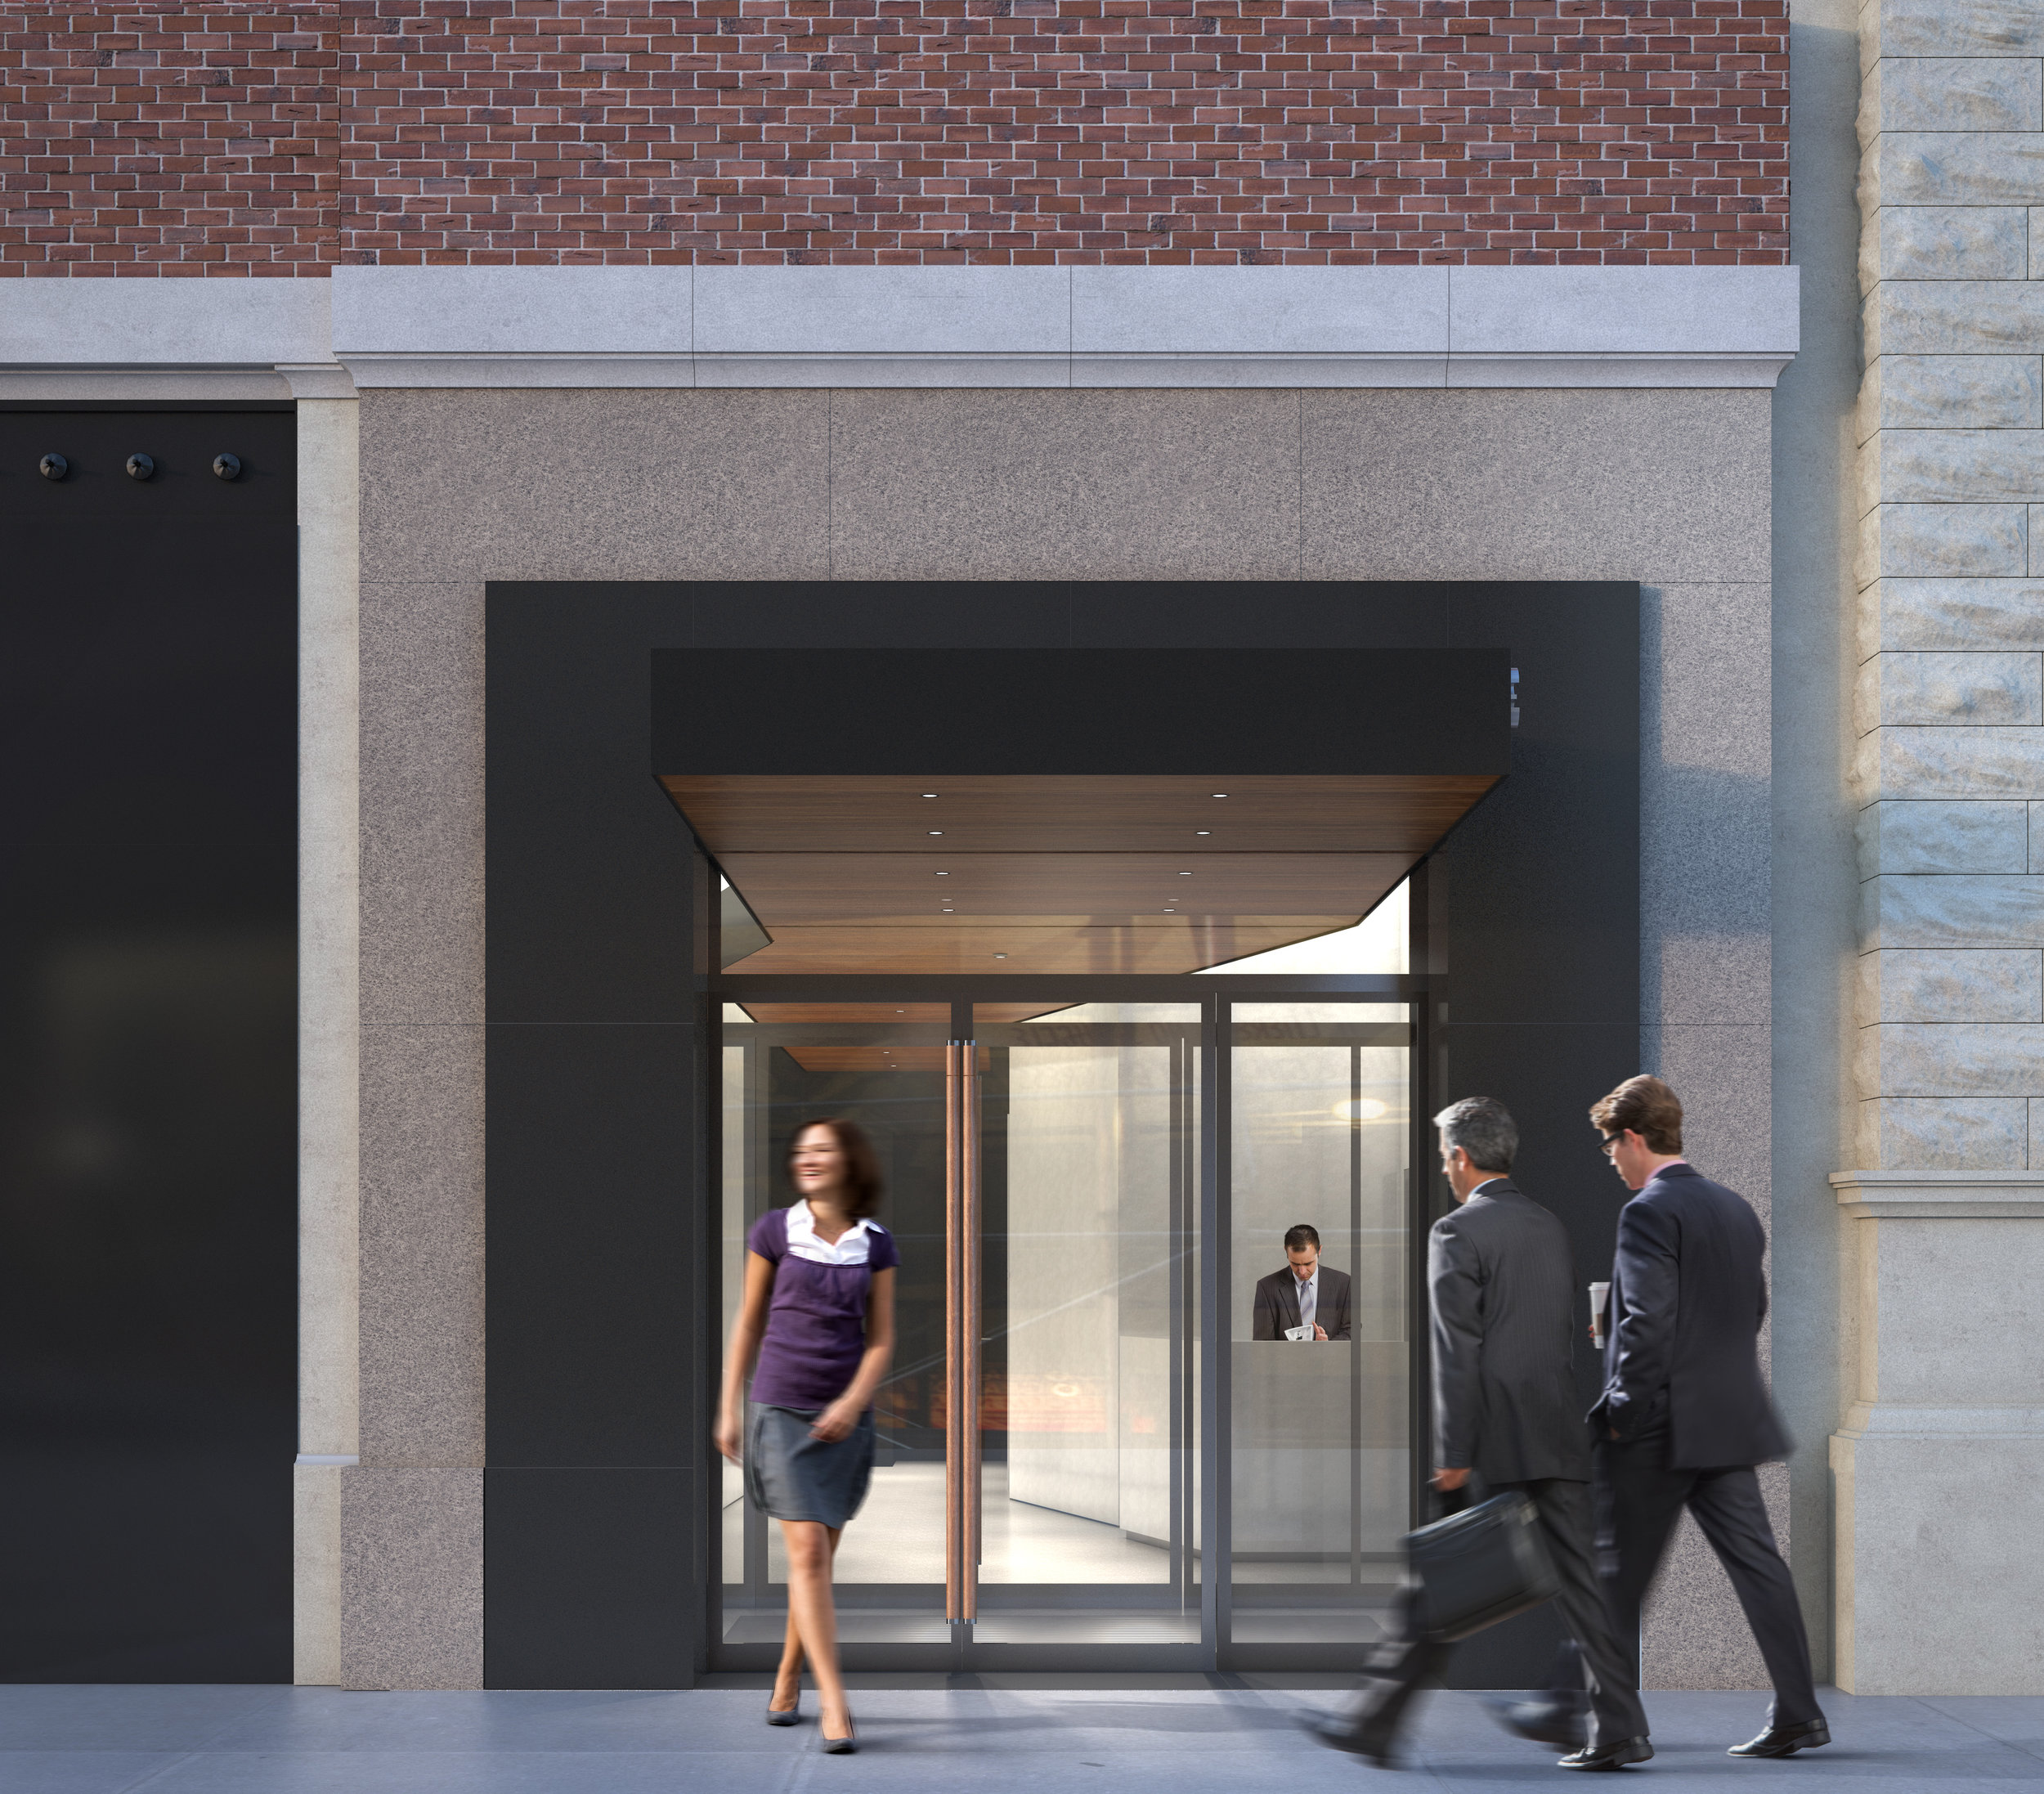 A glimpse from the outside looking into the reception area of Atlas Capital offices building with a woman leaving  and two men walking into the building. MEP provided by 2L Engineering.